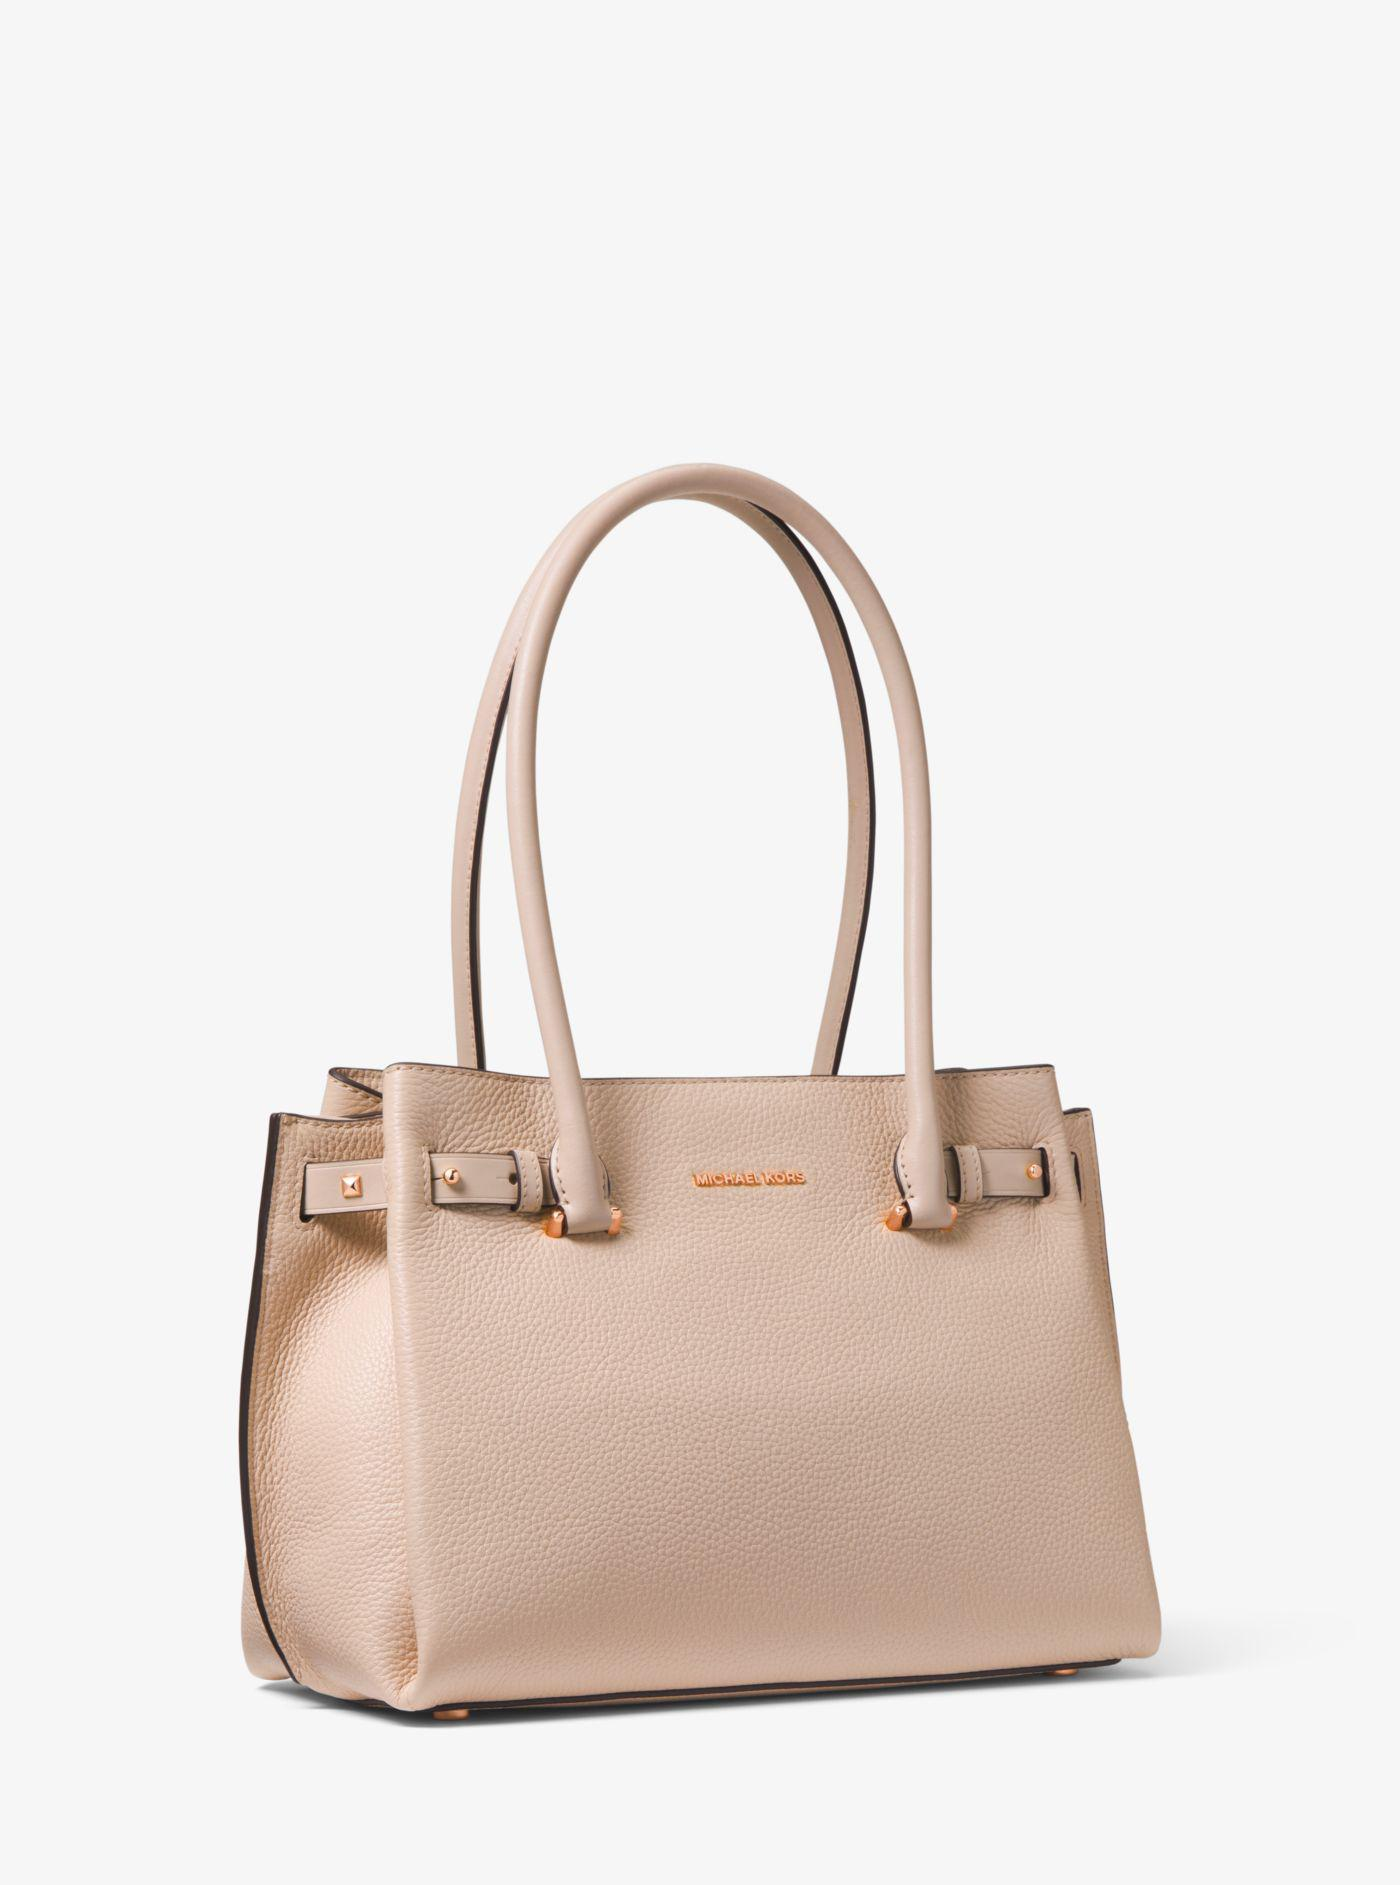 bc5b9a6c425e Michael Kors Addison Medium Pebbled Leather Tote in Pink - Lyst